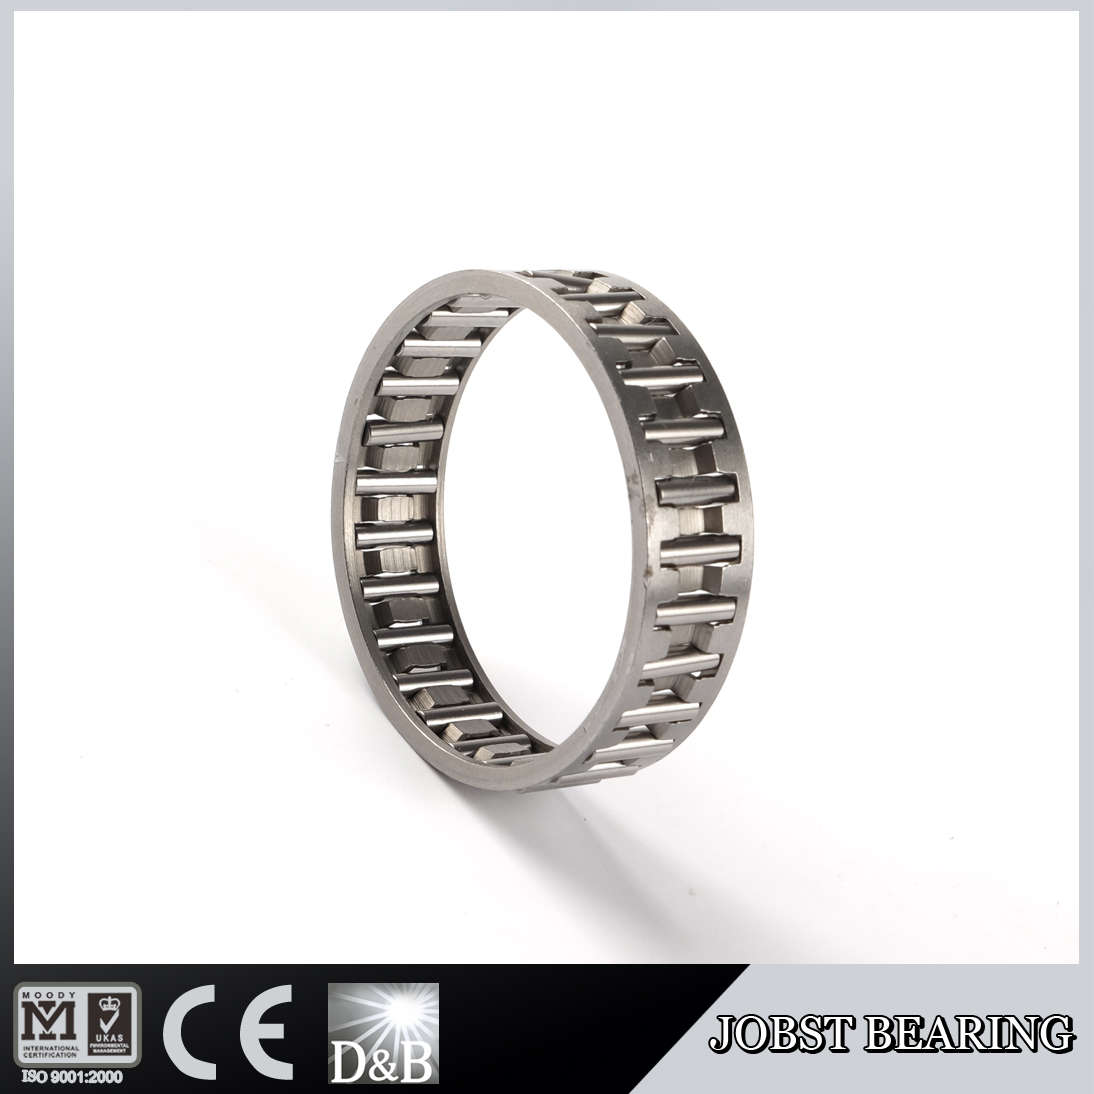 bearings IR 121516 manufacturers …